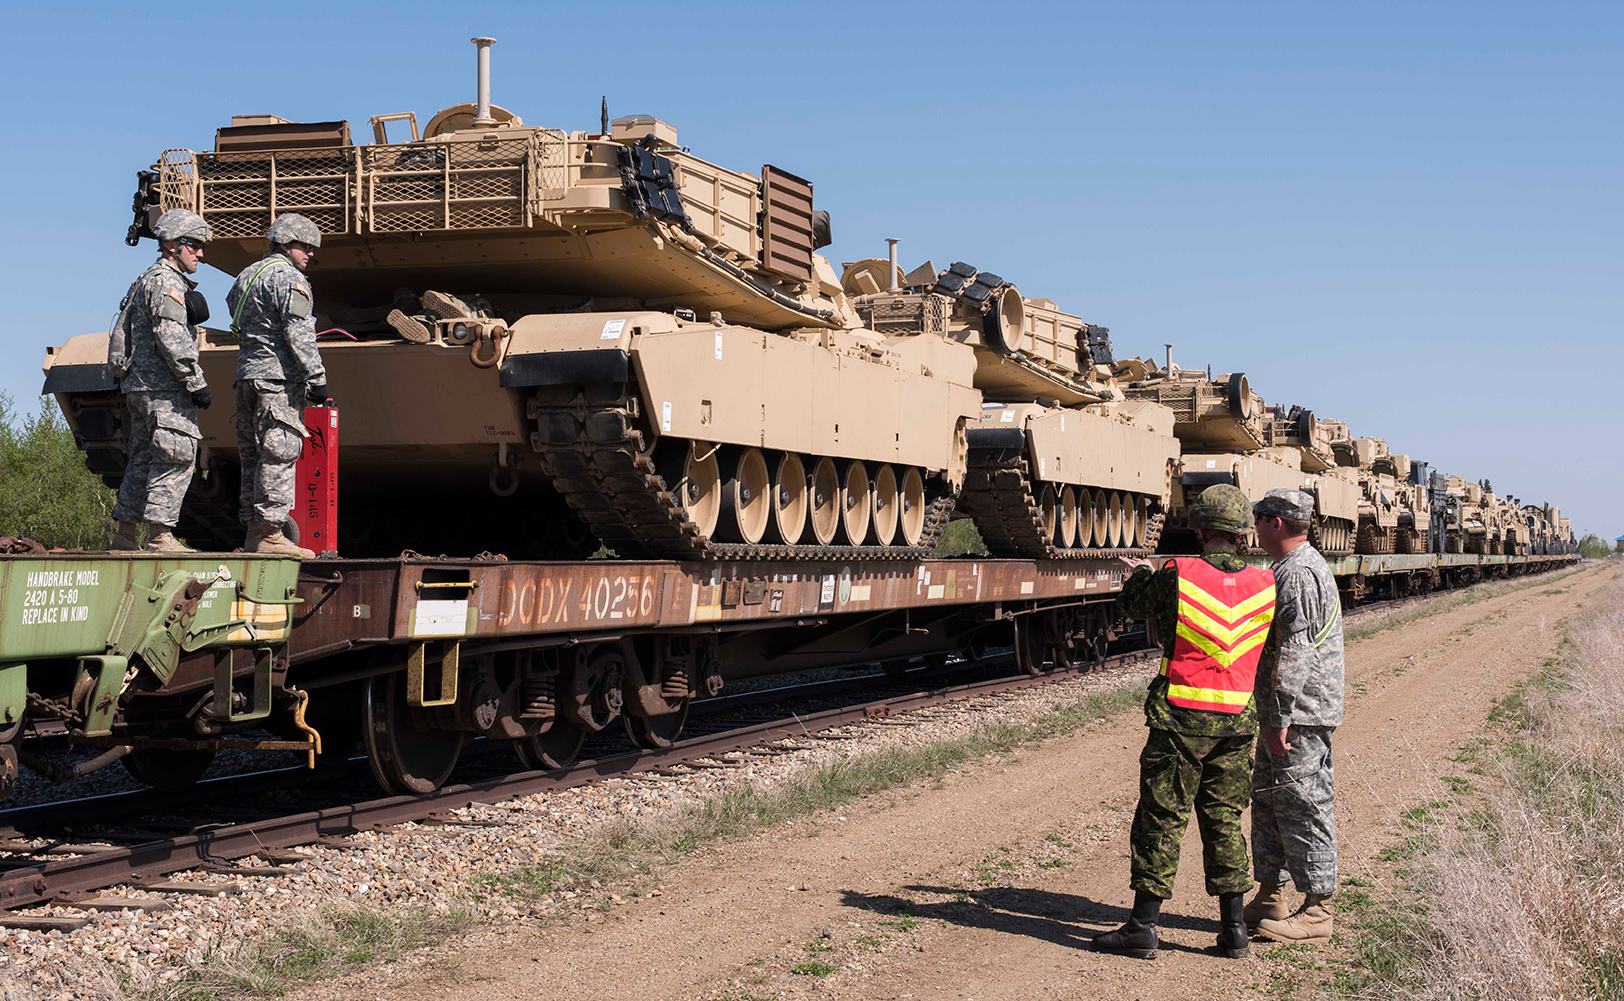 United States Army M1A2 Abrams Main Battle Tanks prepare to be offloaded from a train at Canadian Forces Base/Area Support Unit Wainwright, Alberta during Exercise MAPLE RESOLVE on May 11, 2017. Moving equipment is just one of the challenges of planning the Canadian Army's largest annual exercise. Photo: Sergeant JF Lauzé, 4th Canadian Division Support Base Petawawa. ©2017 DND/MDN Canada.